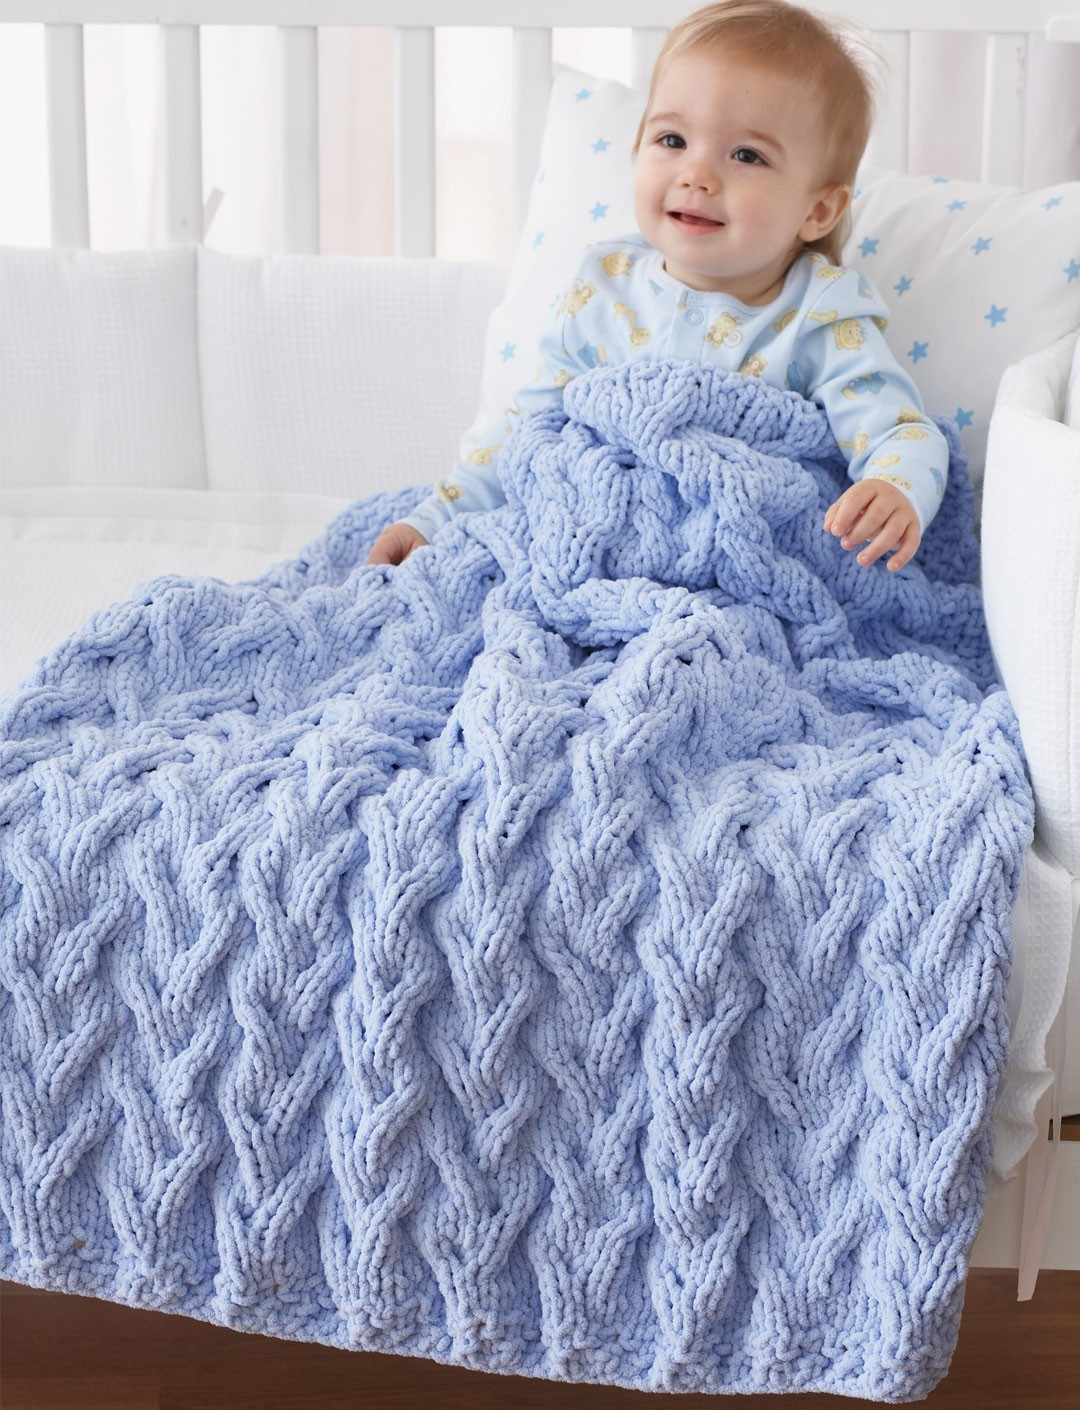 Bernat Crochet Patterns Luxury Bernat Baby Blanket Super Bulky Yarn Crochet Patterns Of Awesome 45 Photos Bernat Crochet Patterns